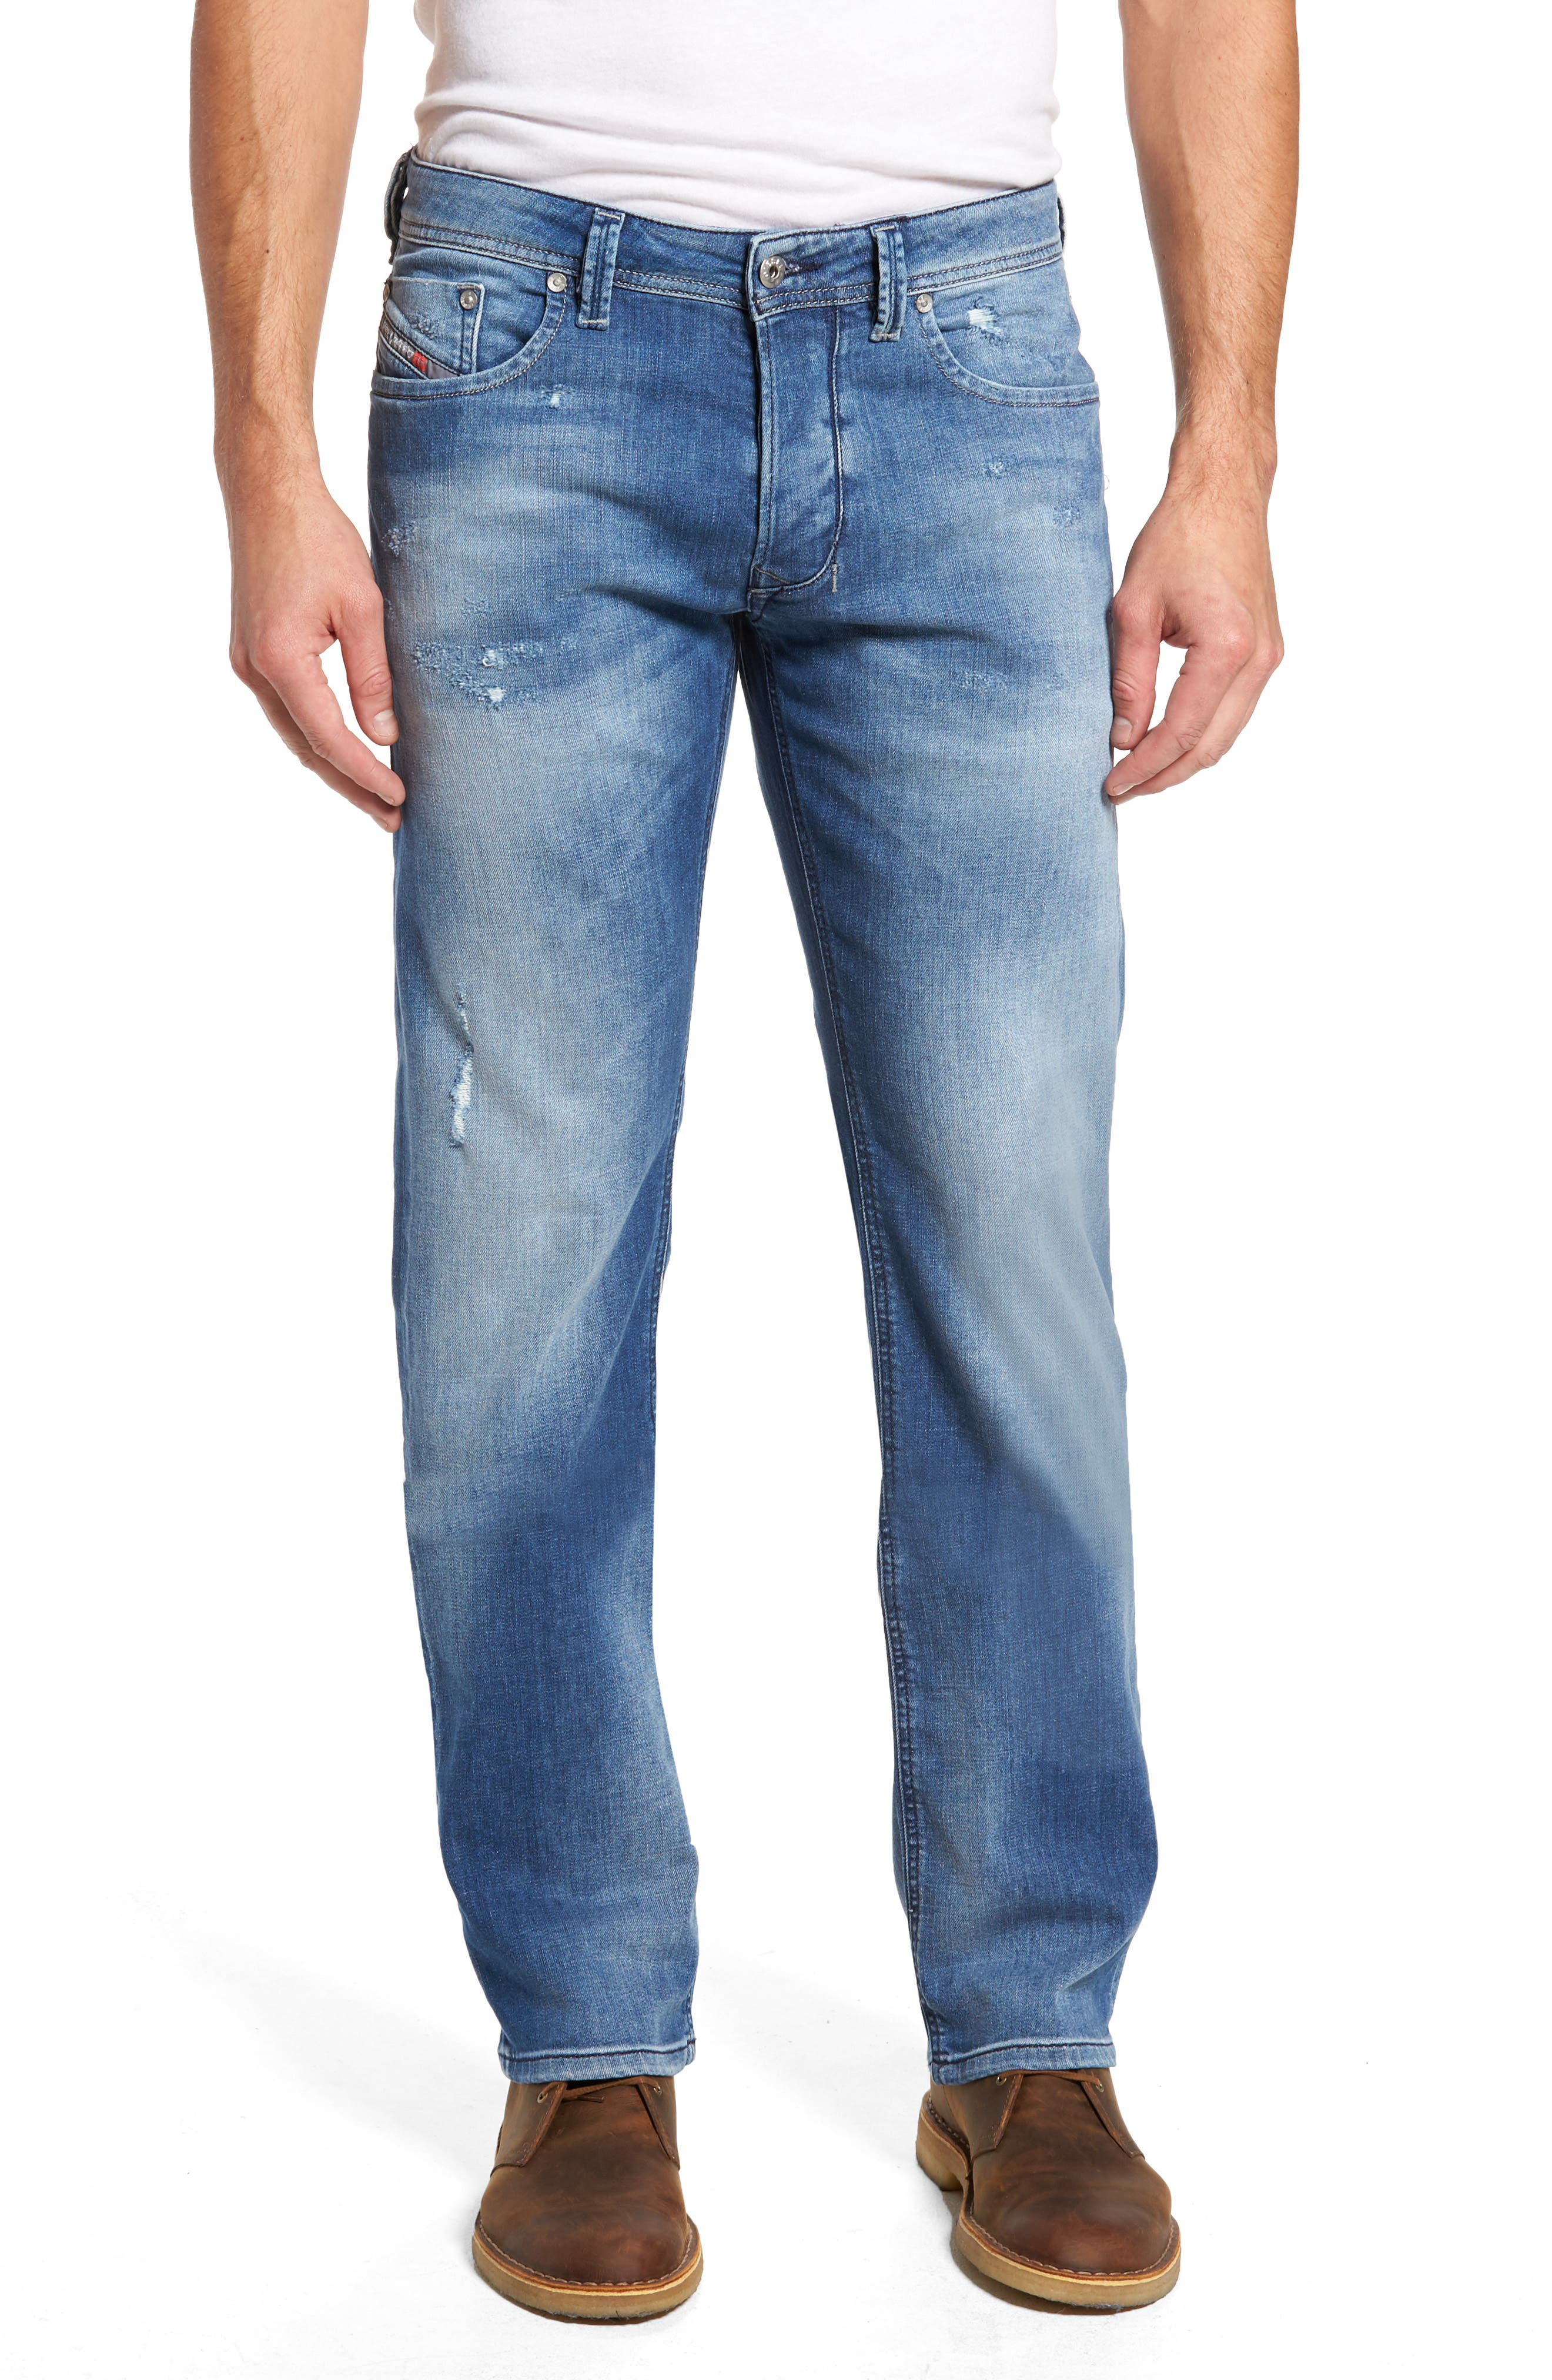 Larkee Relaxed Fit Jeans,                         Main,                         color, 084Qg